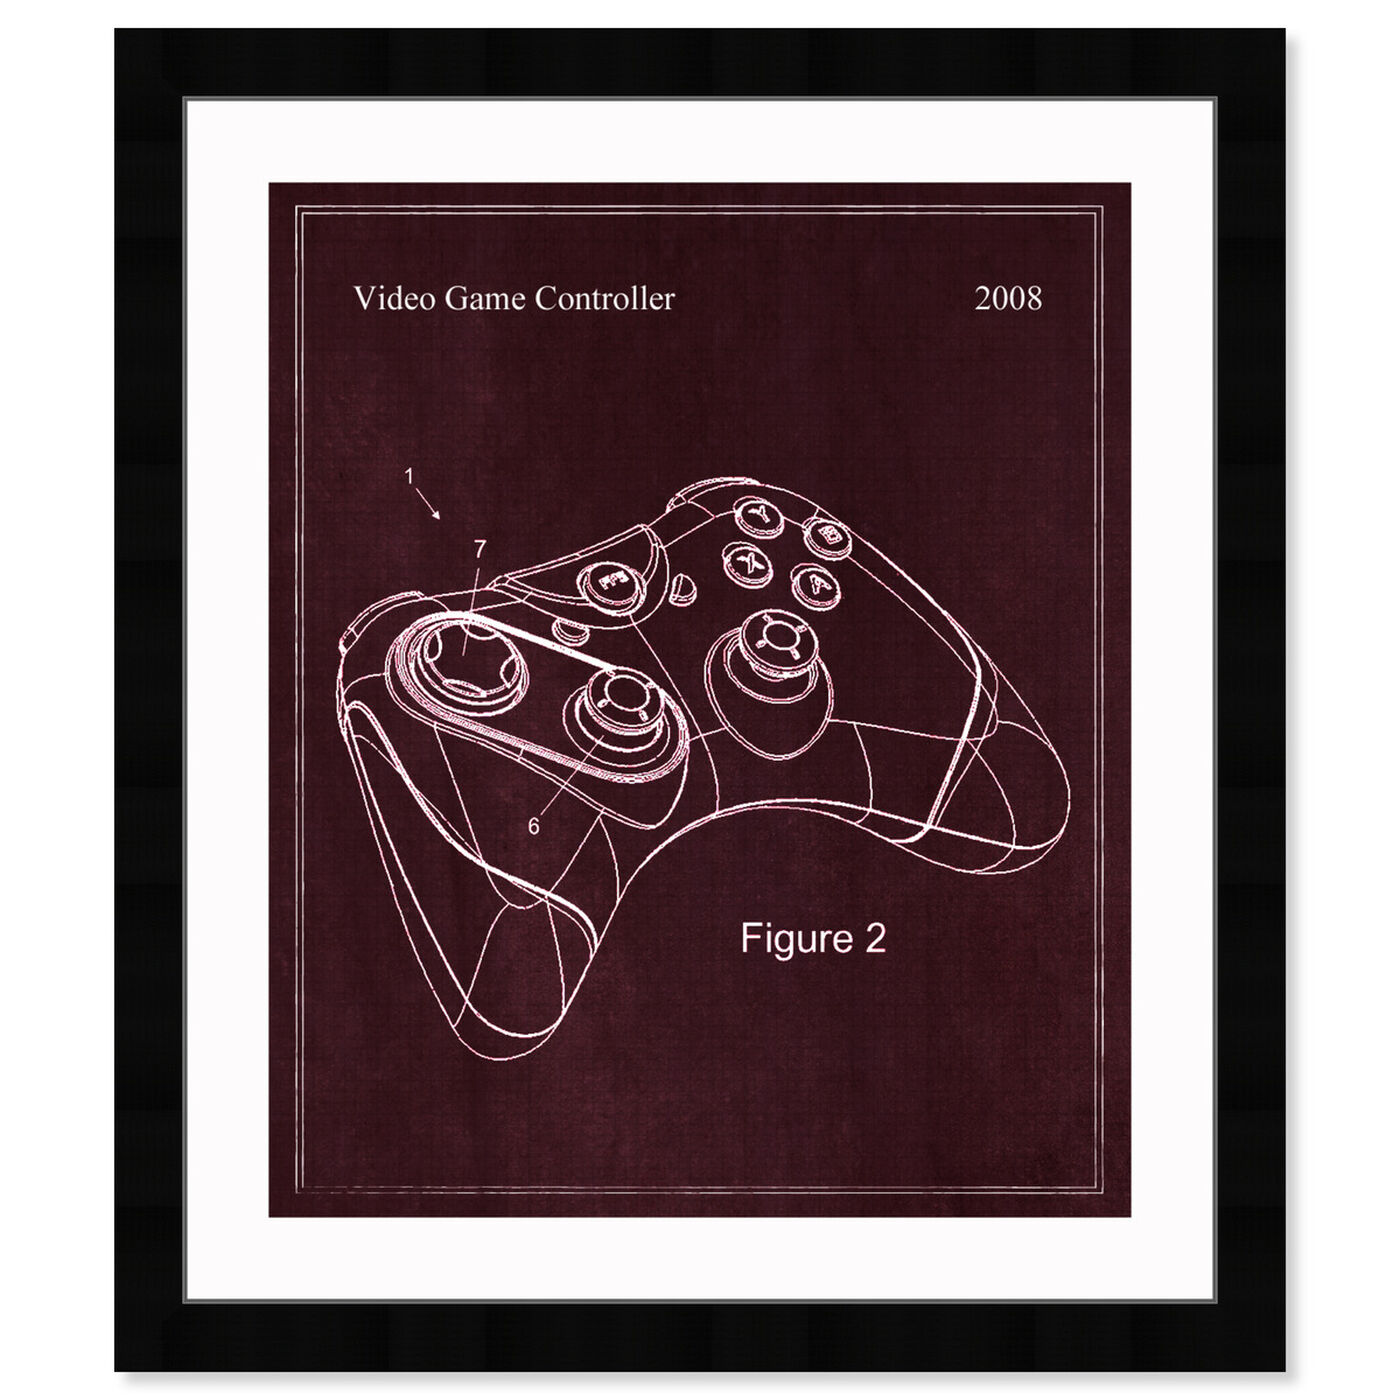 Front view of Video Game Controller, 2008 featuring entertainment and hobbies and video games art.